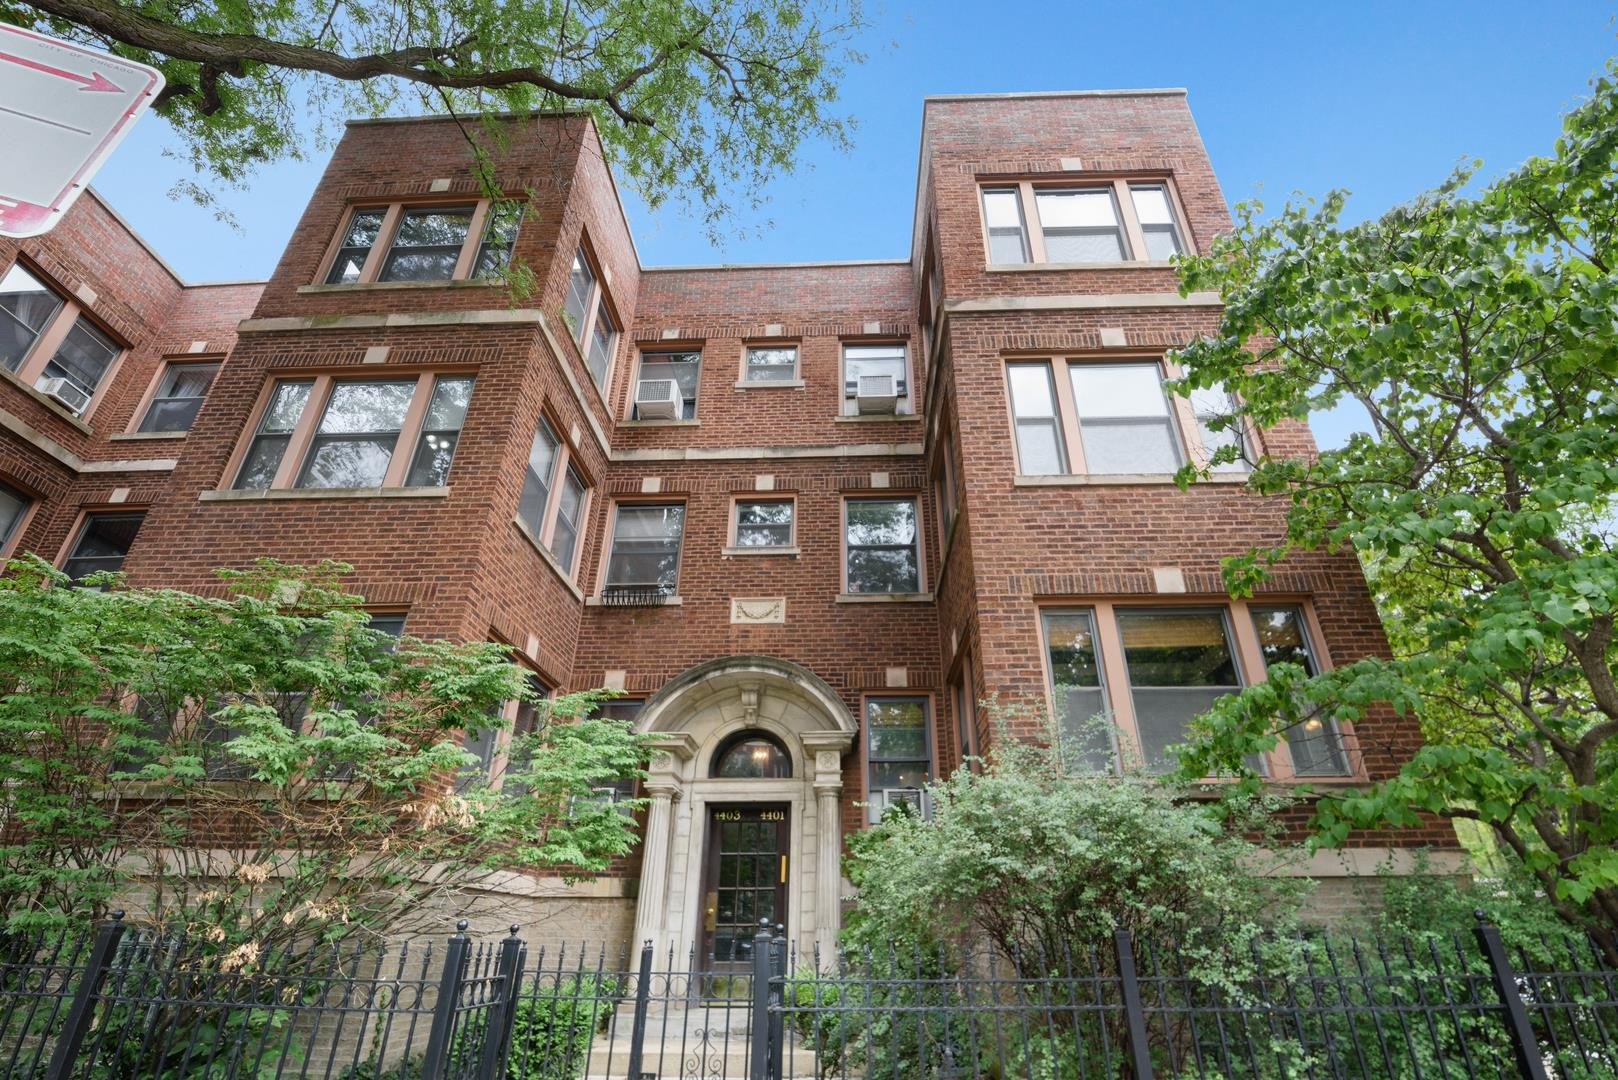 4401 N Racine Avenue #1, Chicago, IL 60640 - MLS#: 10857250